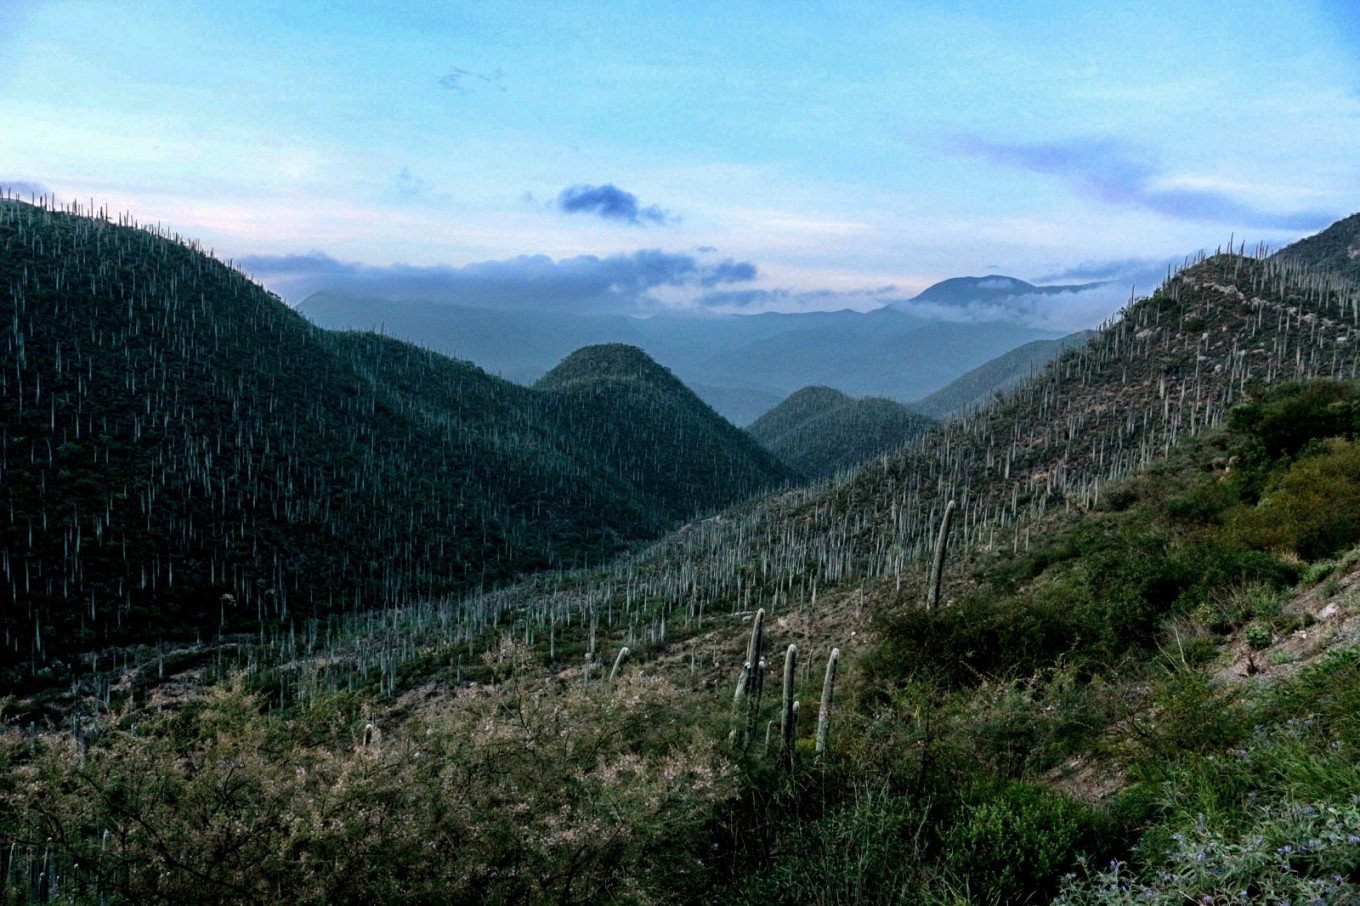 Valley of Tehuacan-Cuicatlan listed as UNESCO heritage site